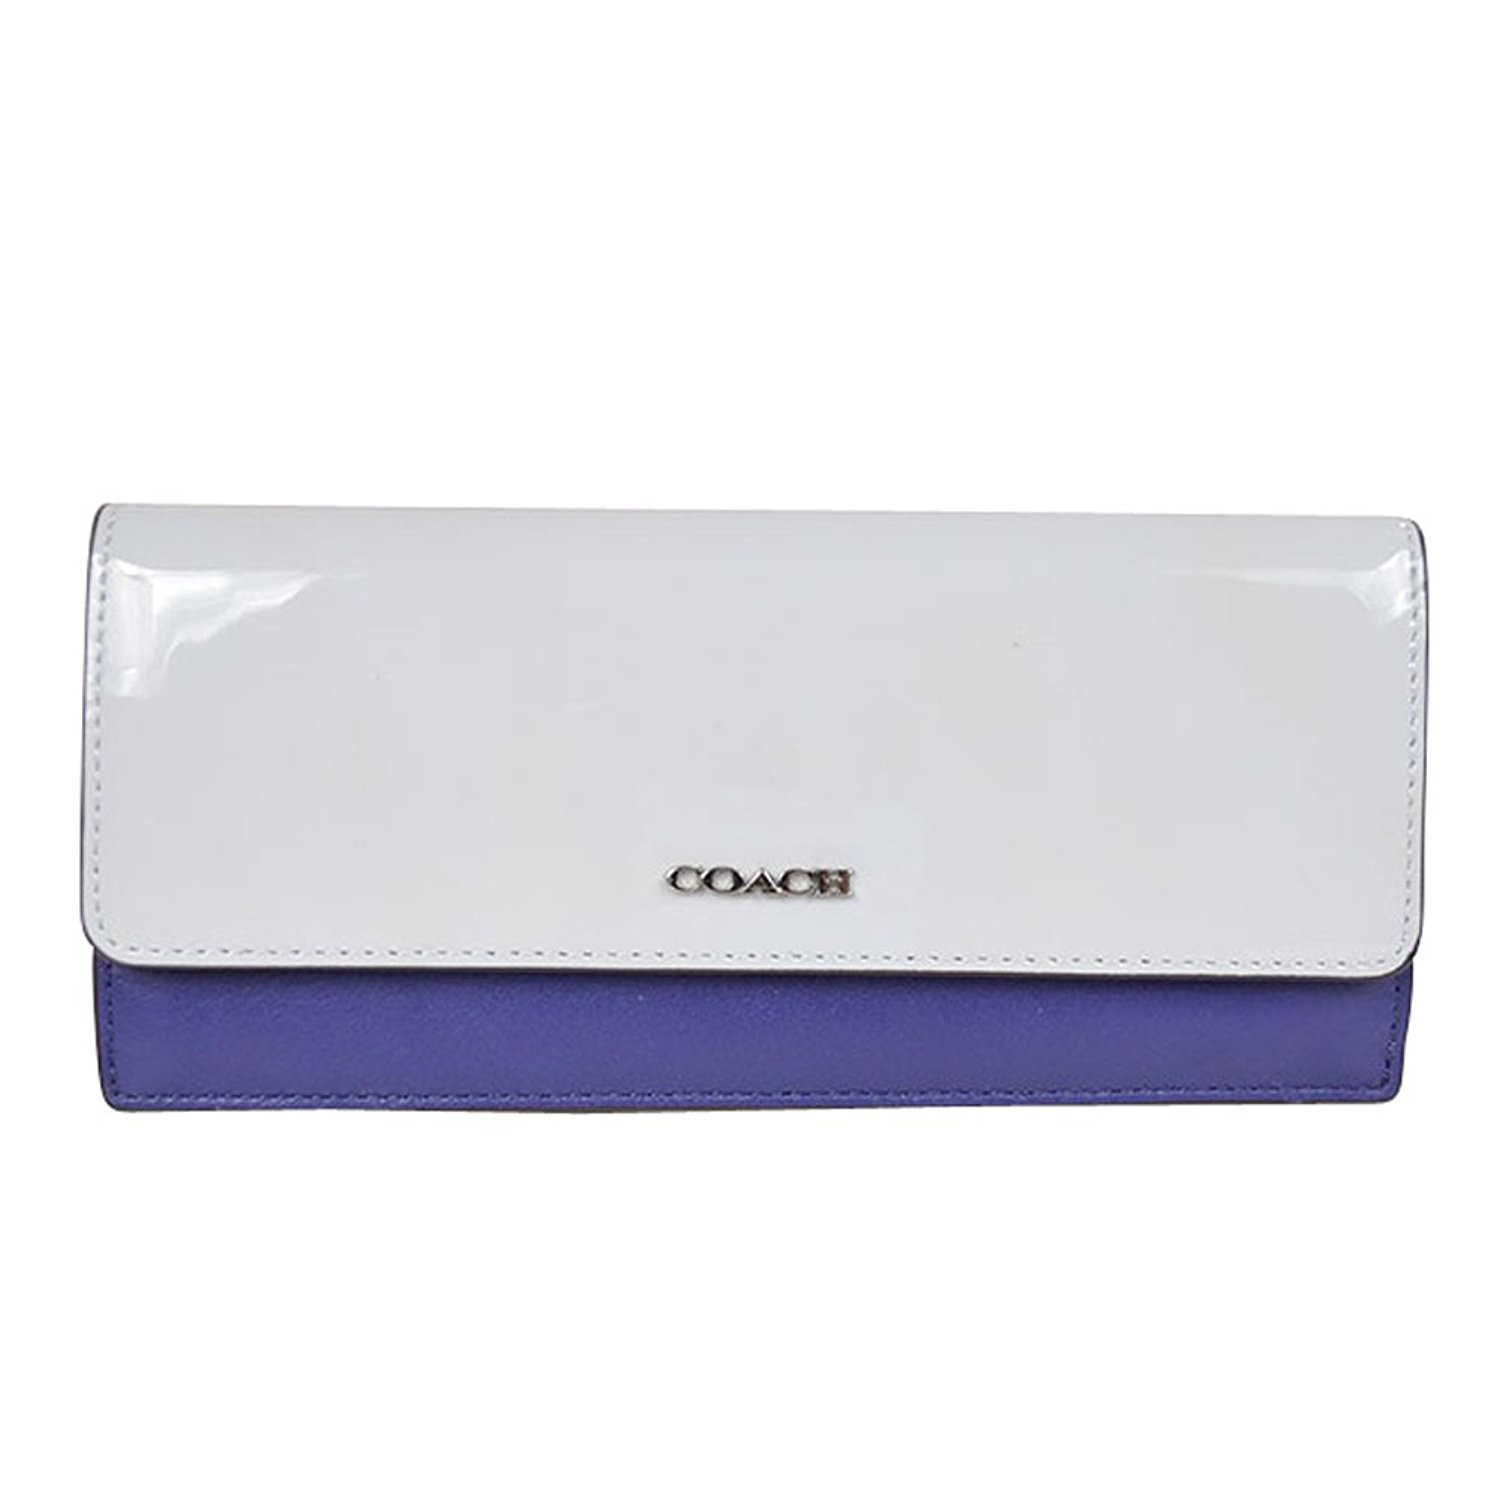 041d0f119f34 ... buy coach 51475 soft wallet in colorbock mixed leather in silver blue  handbags amazon ae855 883d2